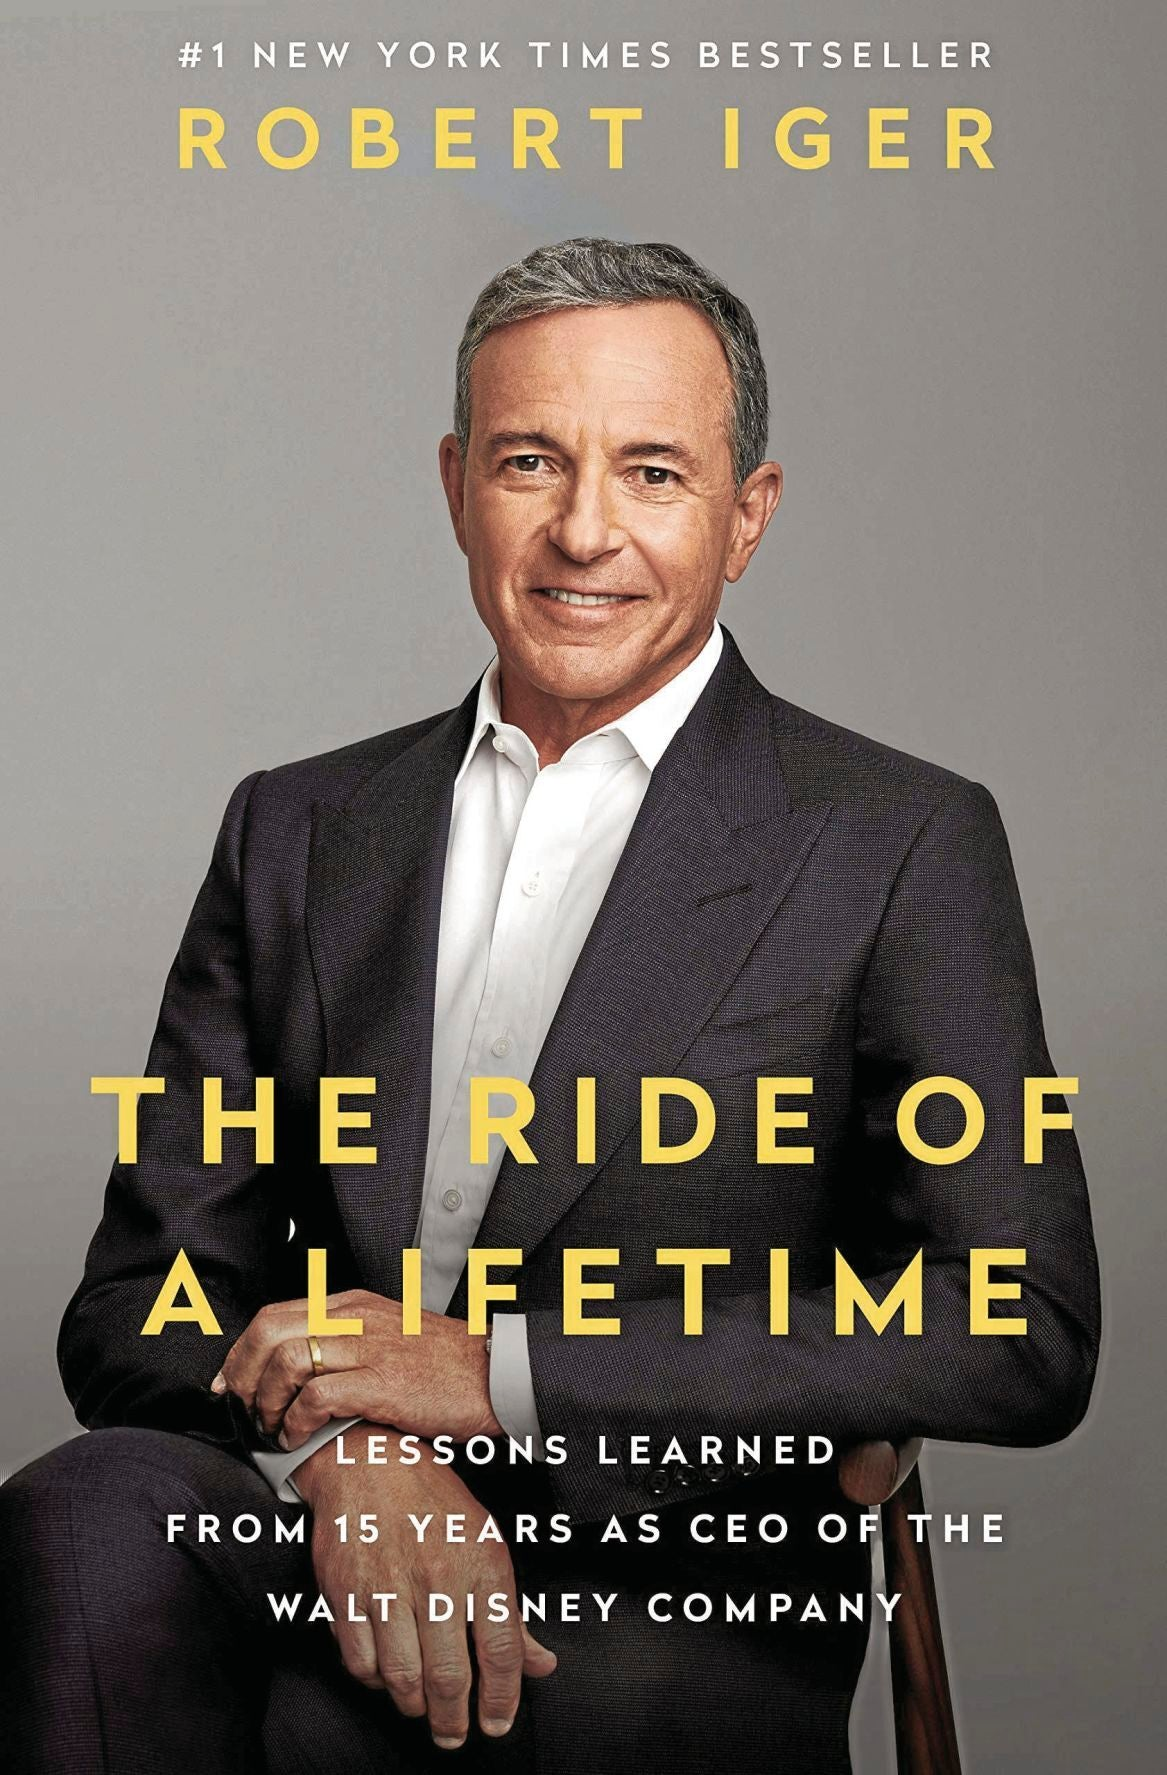 THE RIDE OF A LIFETIME | BY ROBERT IGER